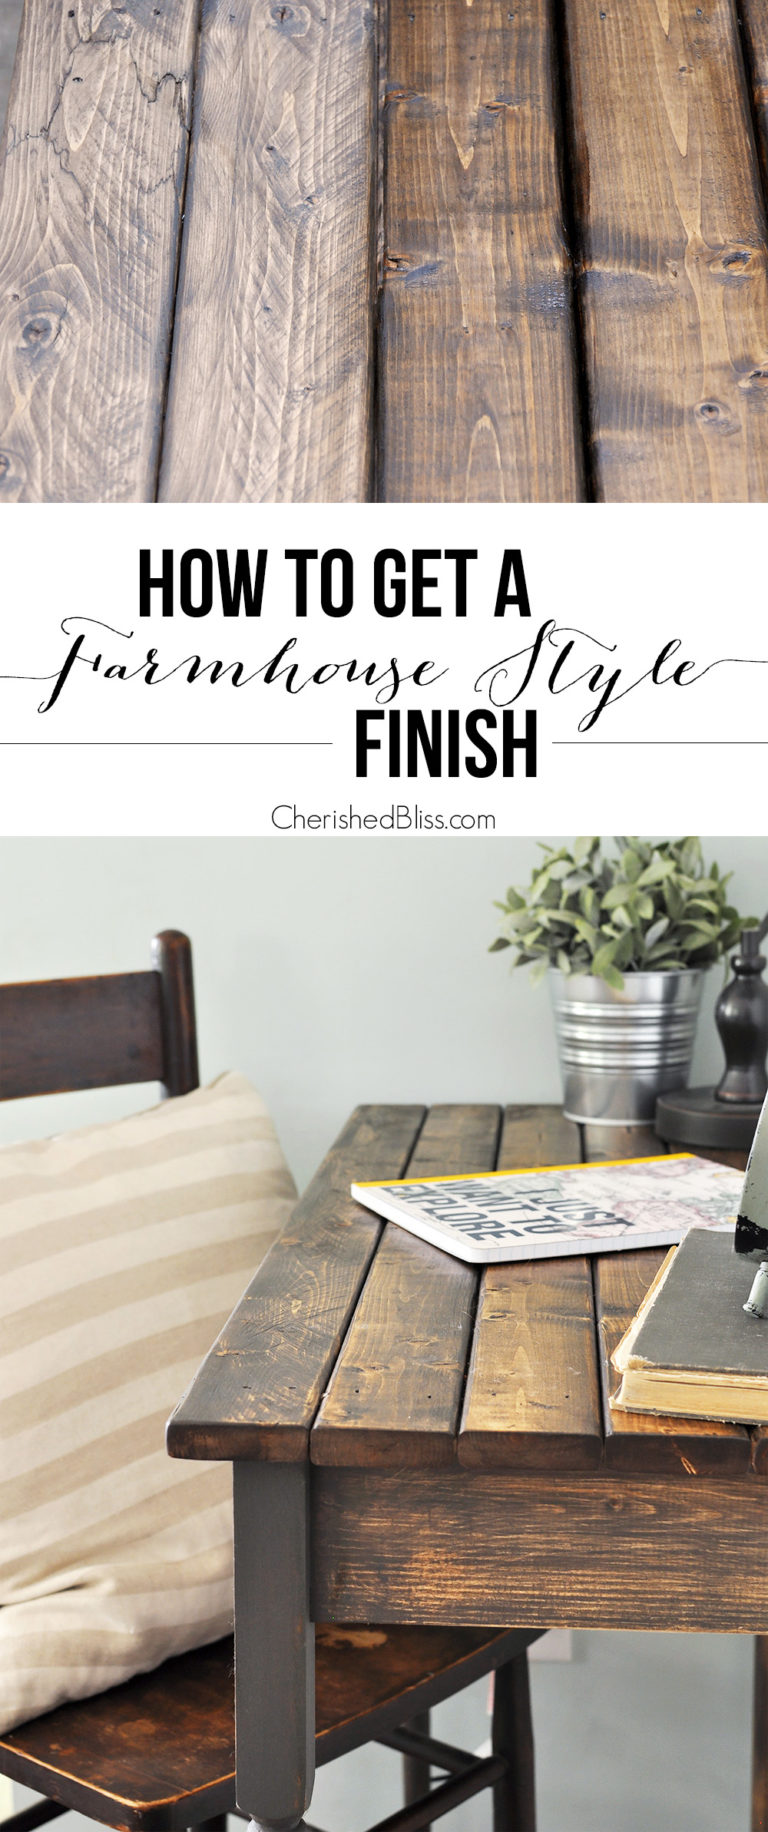 10 Fixer Upper-Inspired Home Decor Projects| Fixer Upper, Fixer Upper DIY, Fixer Upper Decorating Ideas, Farmhouse Decor, Farmhouse Decor Ideas, Joanna Gaines, Joanna Gaines Style